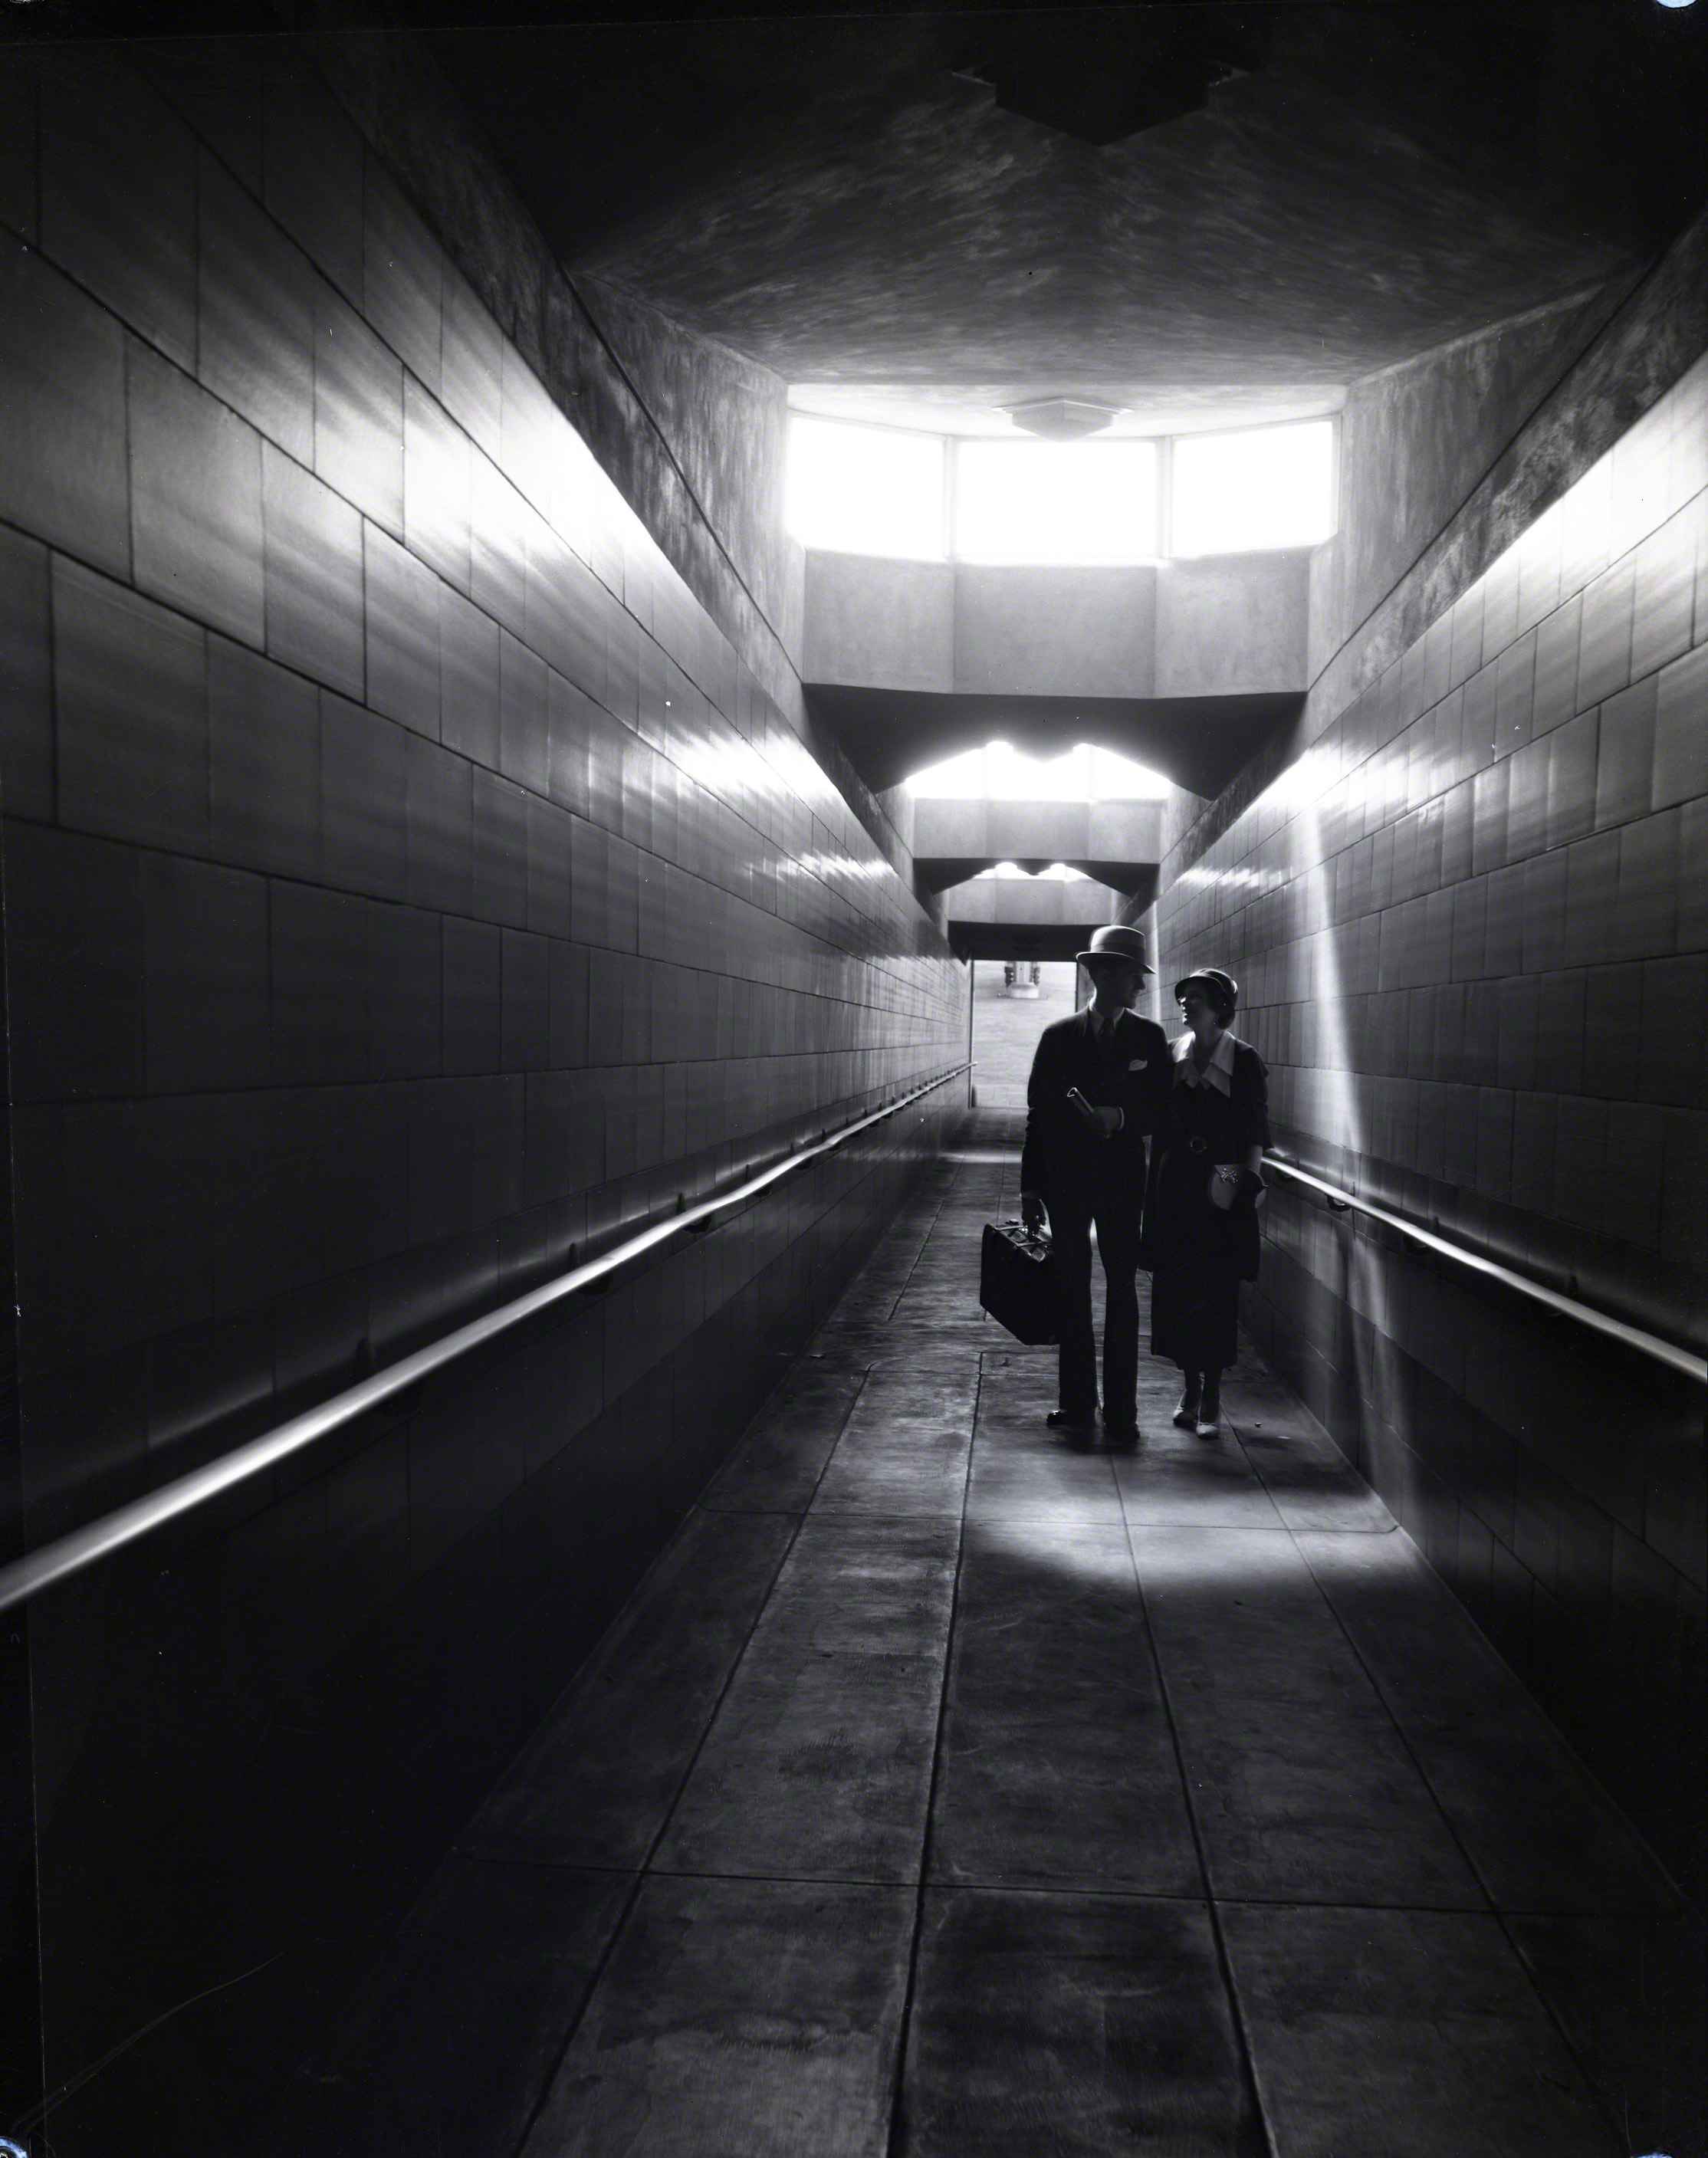 Ramp with People from Concourse to Platform.jpg